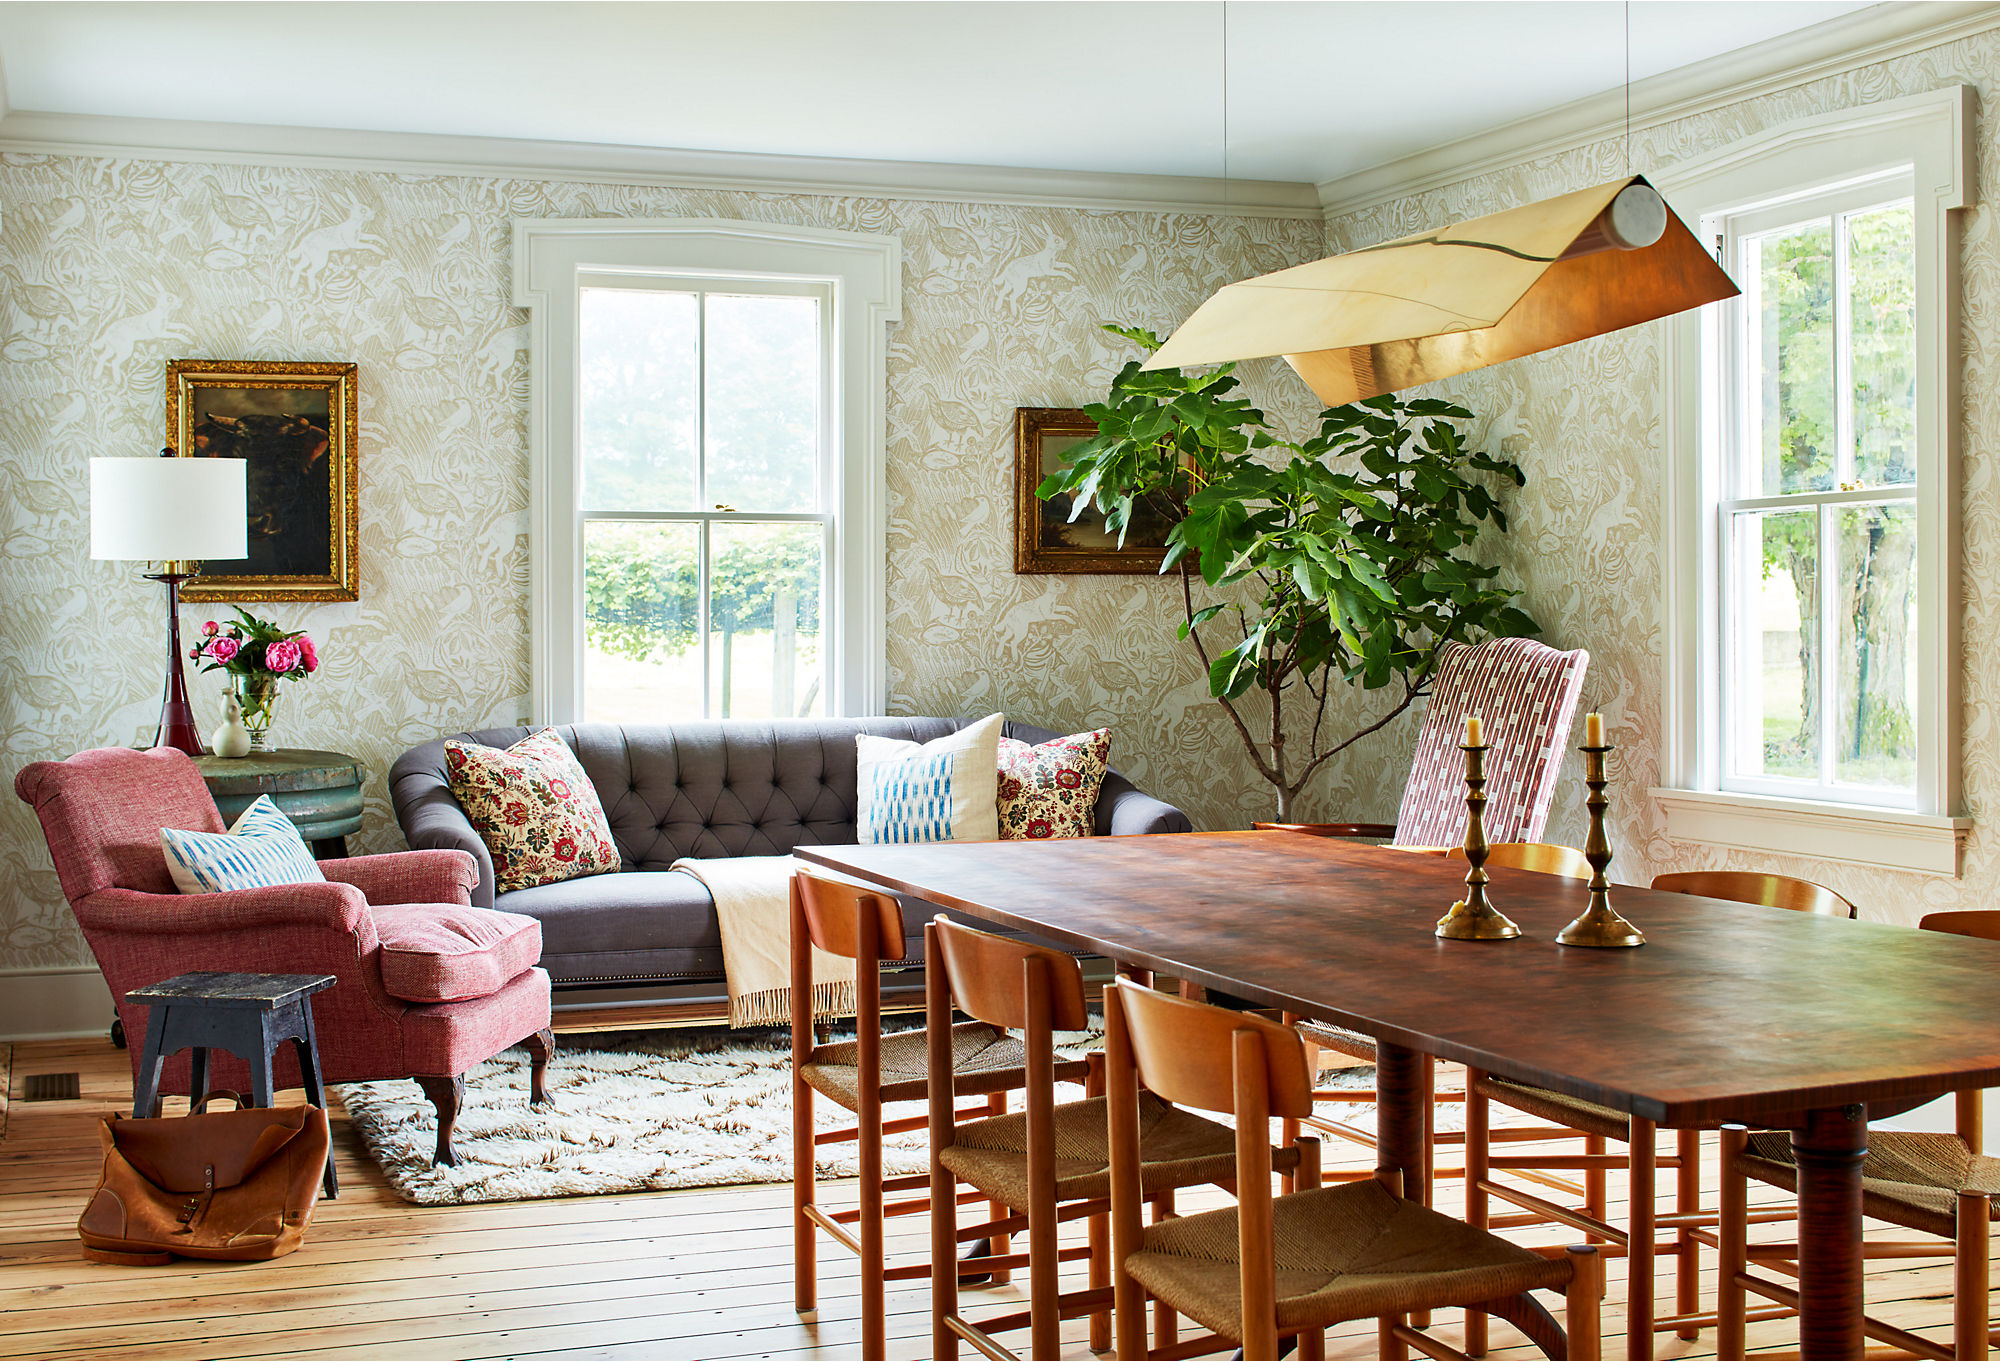 """The dining room sits in the middle of the house. Heide wanted the heavily trafficked space to have multiple functions. The sitting portion of the dining room gets amazing light that """"makes this area especially wonderful for reading and a morning cup of coffee,"""" she says. """"Likewise, the area functions as a spillover lounge area during long dinner parties."""""""